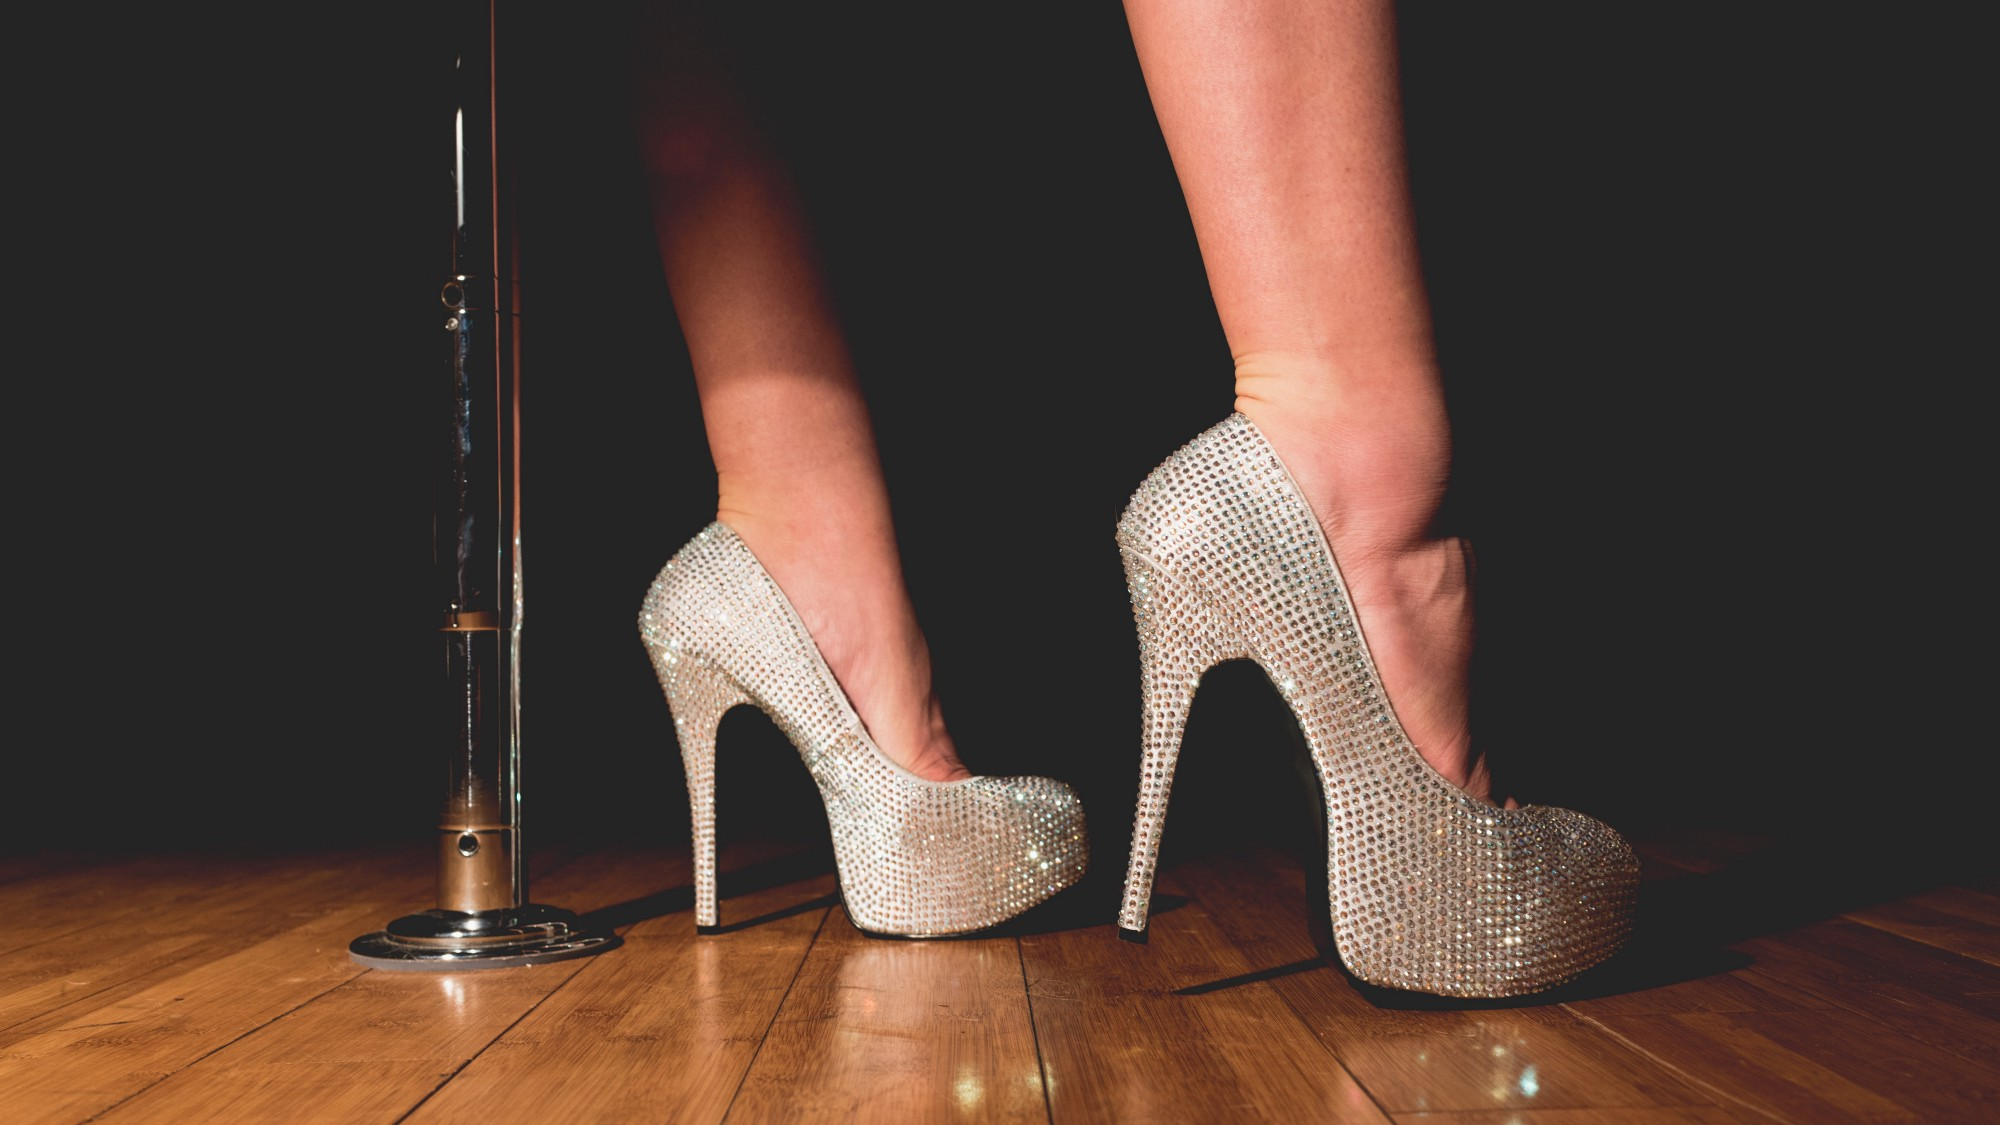 A shot of a woman's feet in stiletto high heels covered with rhinestones, standing next to a pole